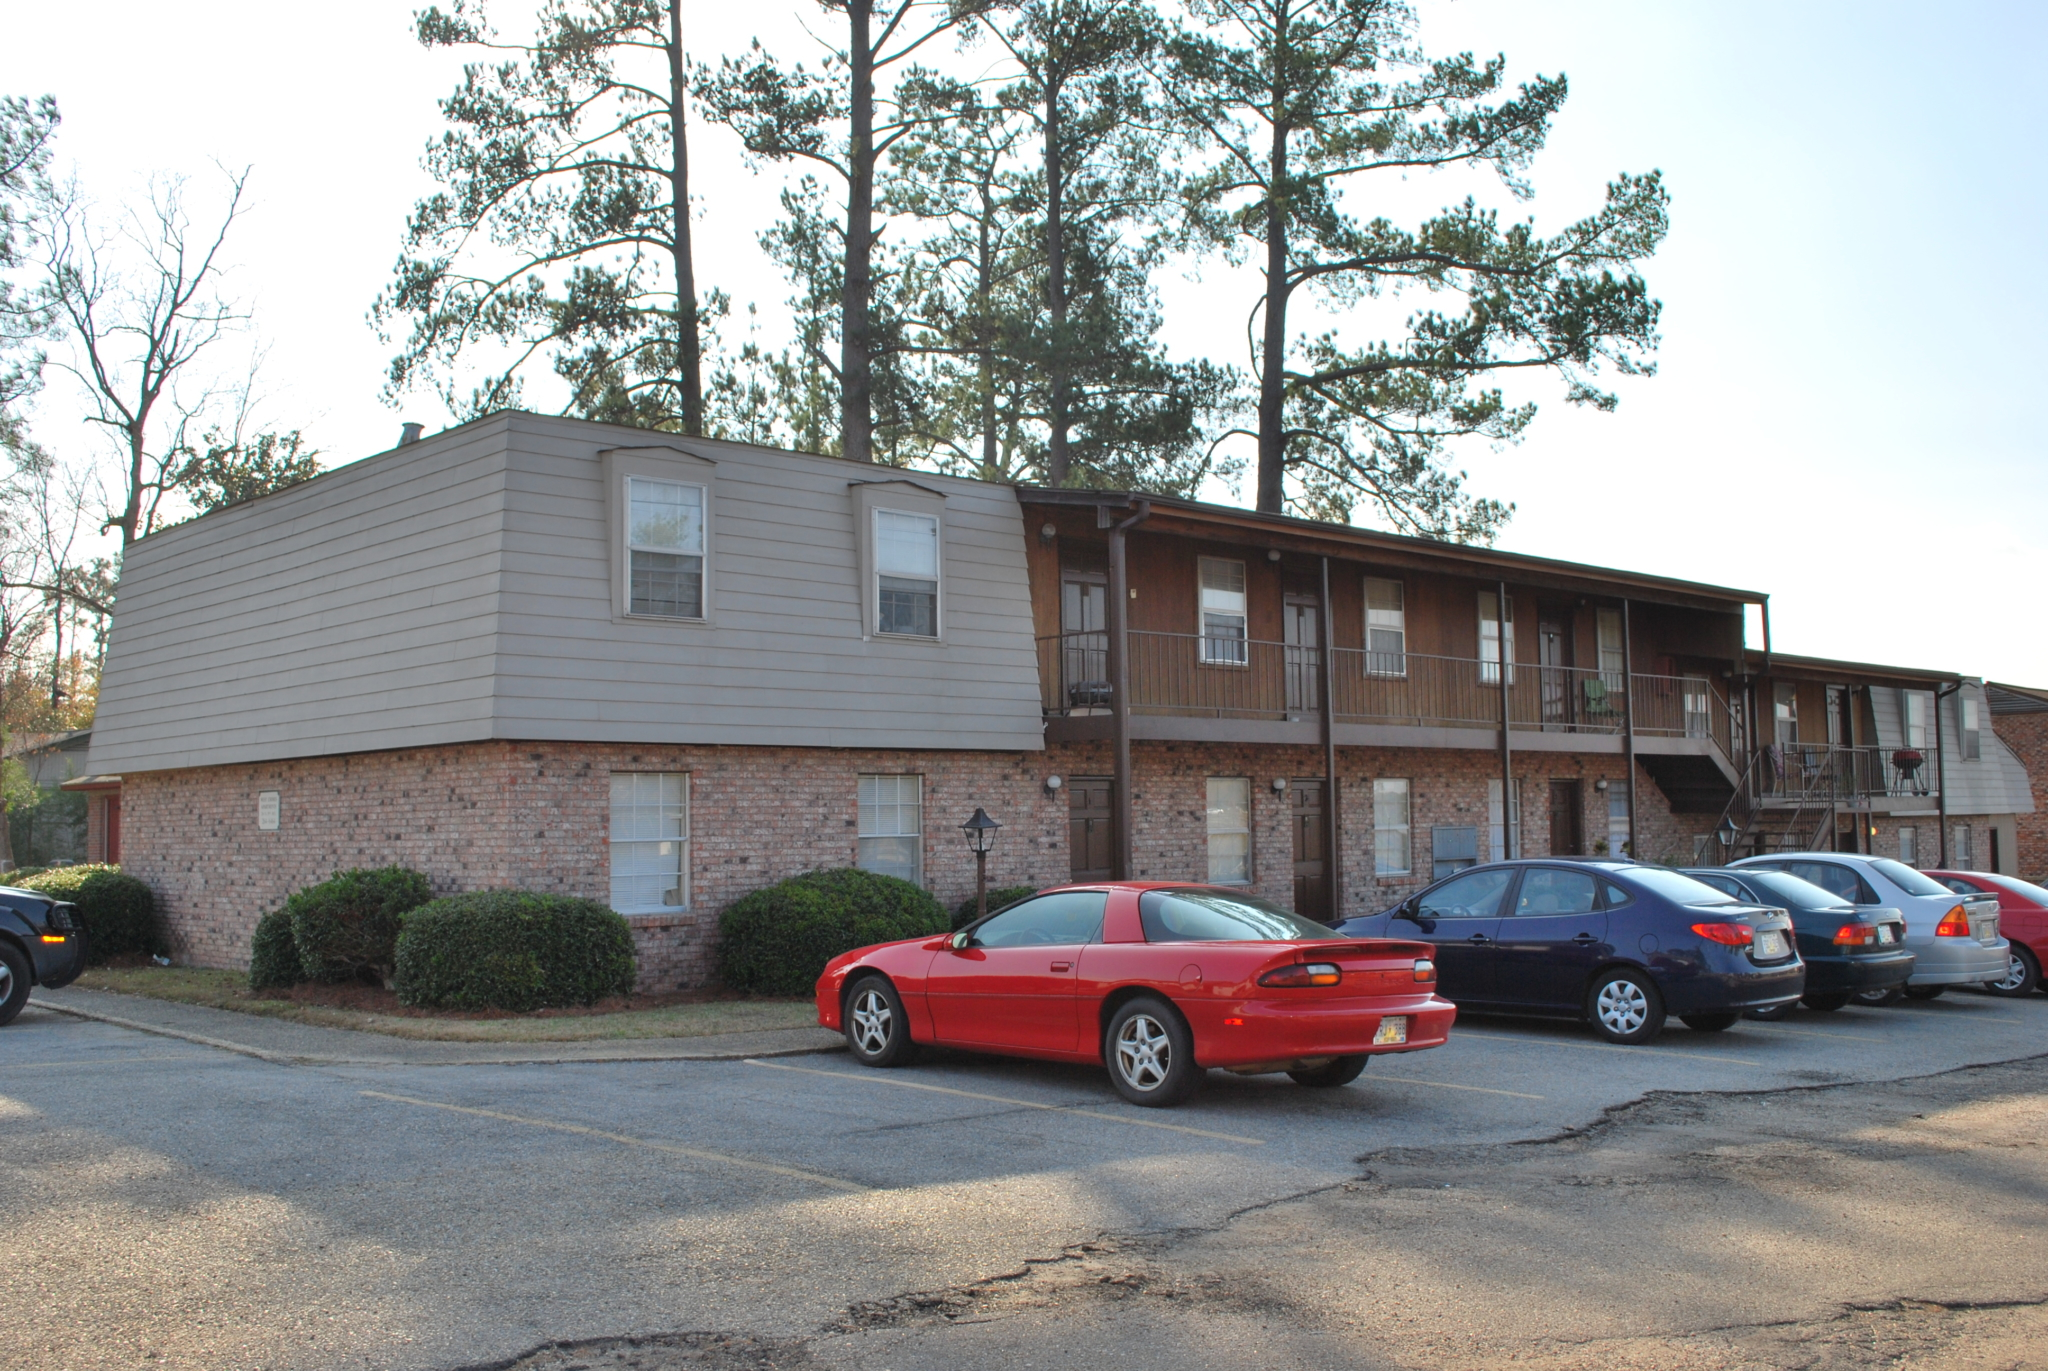 1 Bedroom Apartments Hattiesburg Ms 28 Images 1 Bedroom Apartments In Hattiesburg Ms Awesome